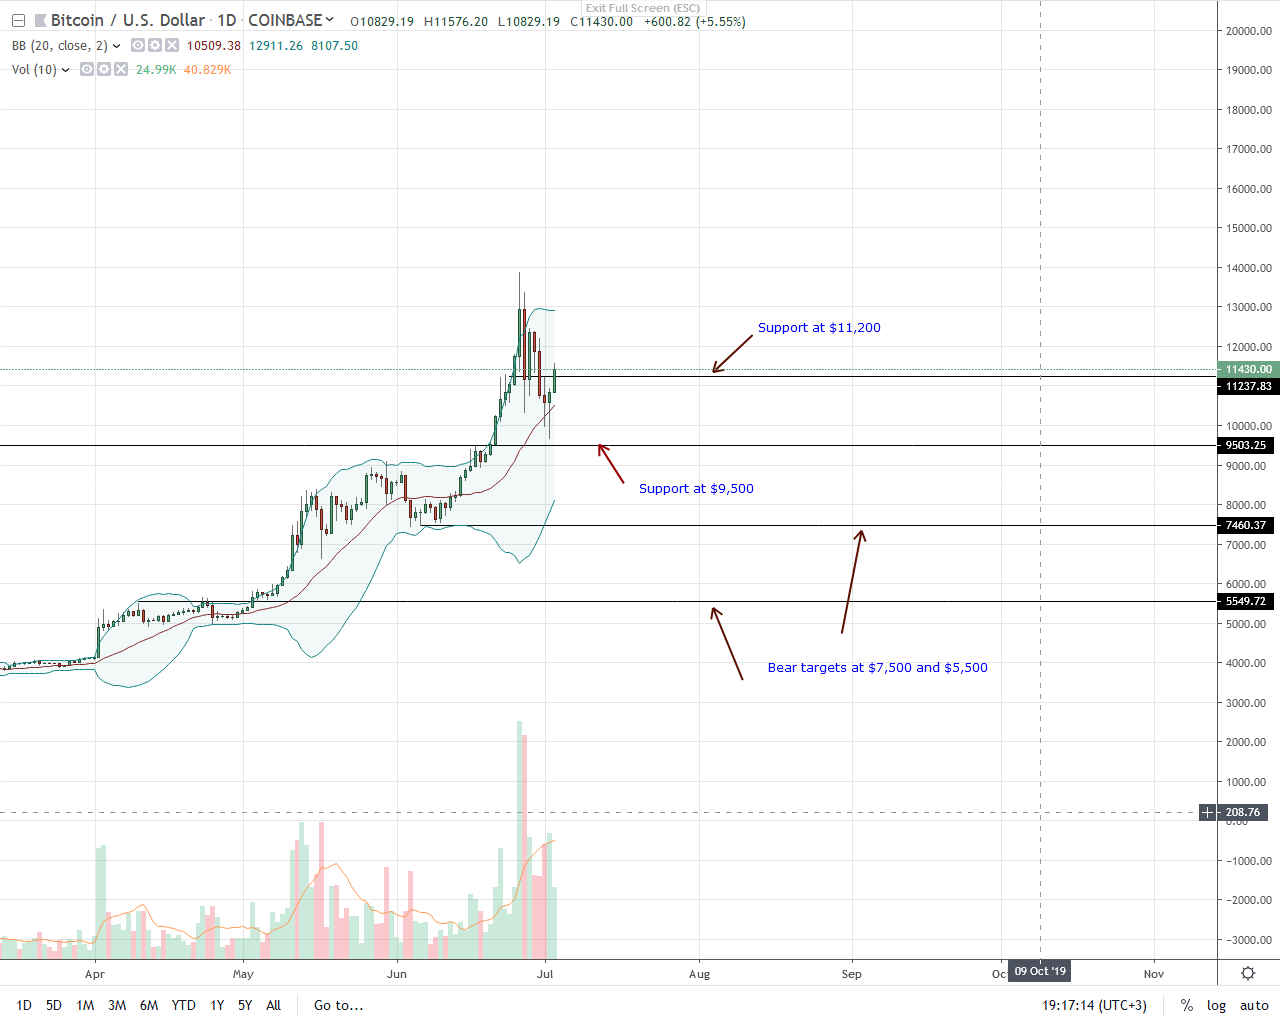 Bitcoin (BTC) Price Rally And Recent Influx of USD Directly Correlate